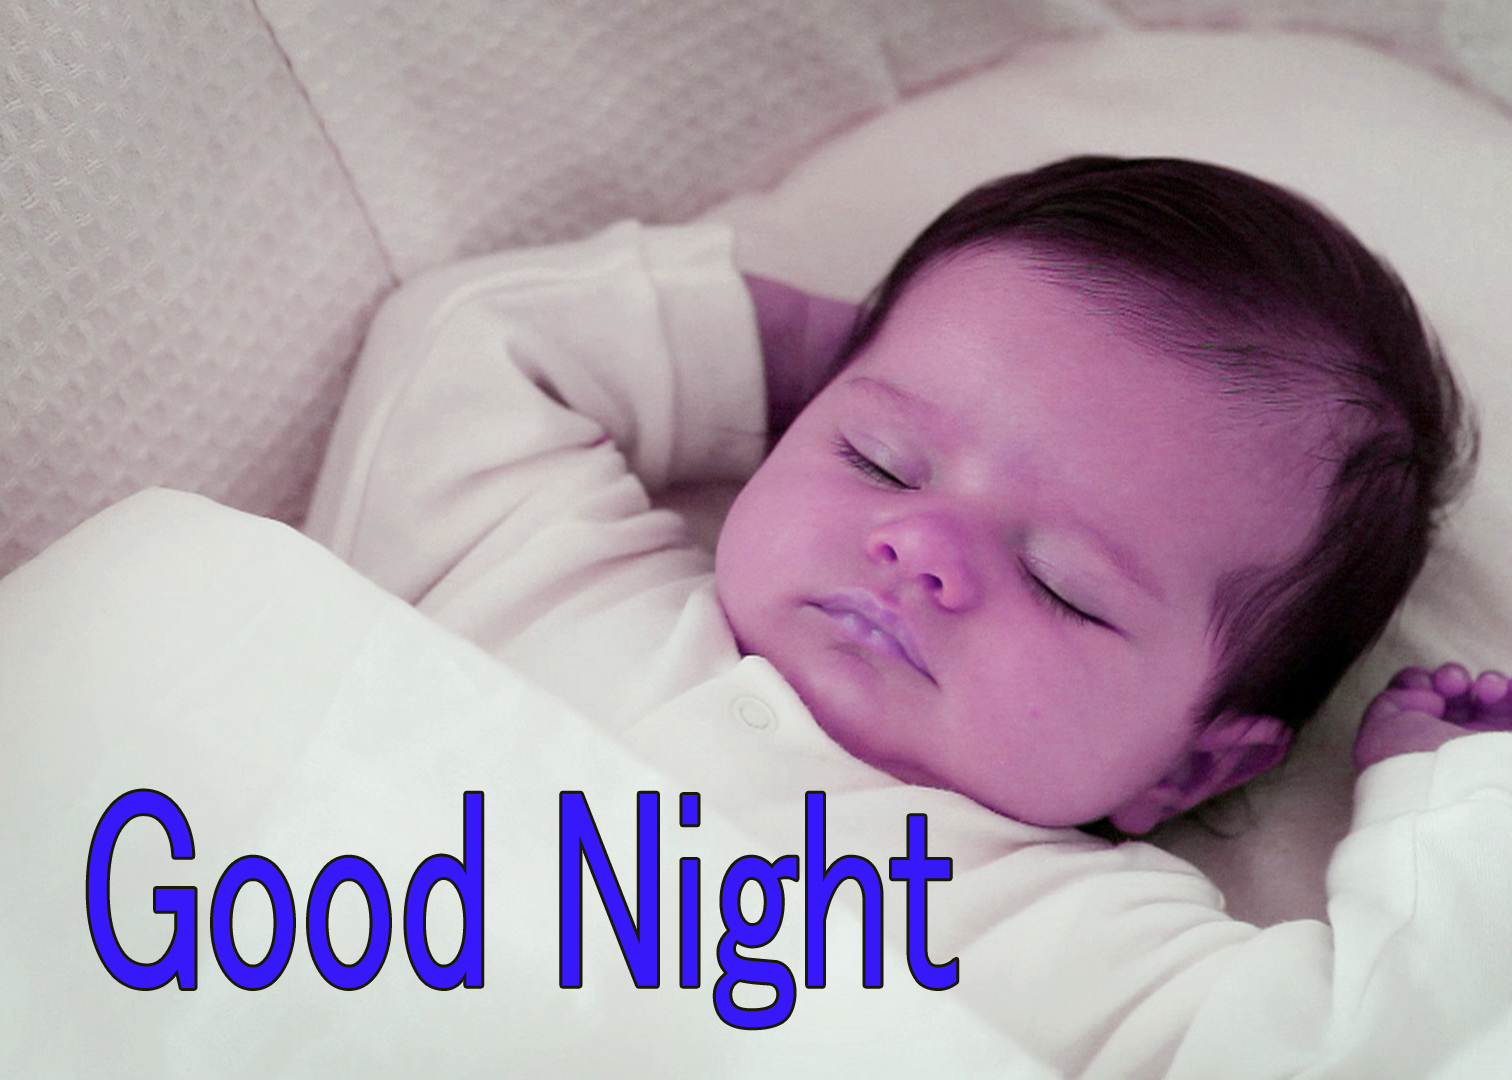 GOOD NIGHT IMAGES WITH CUTE BABY BOYS & GIRLS  PICTURES FREE DOWNLOAD